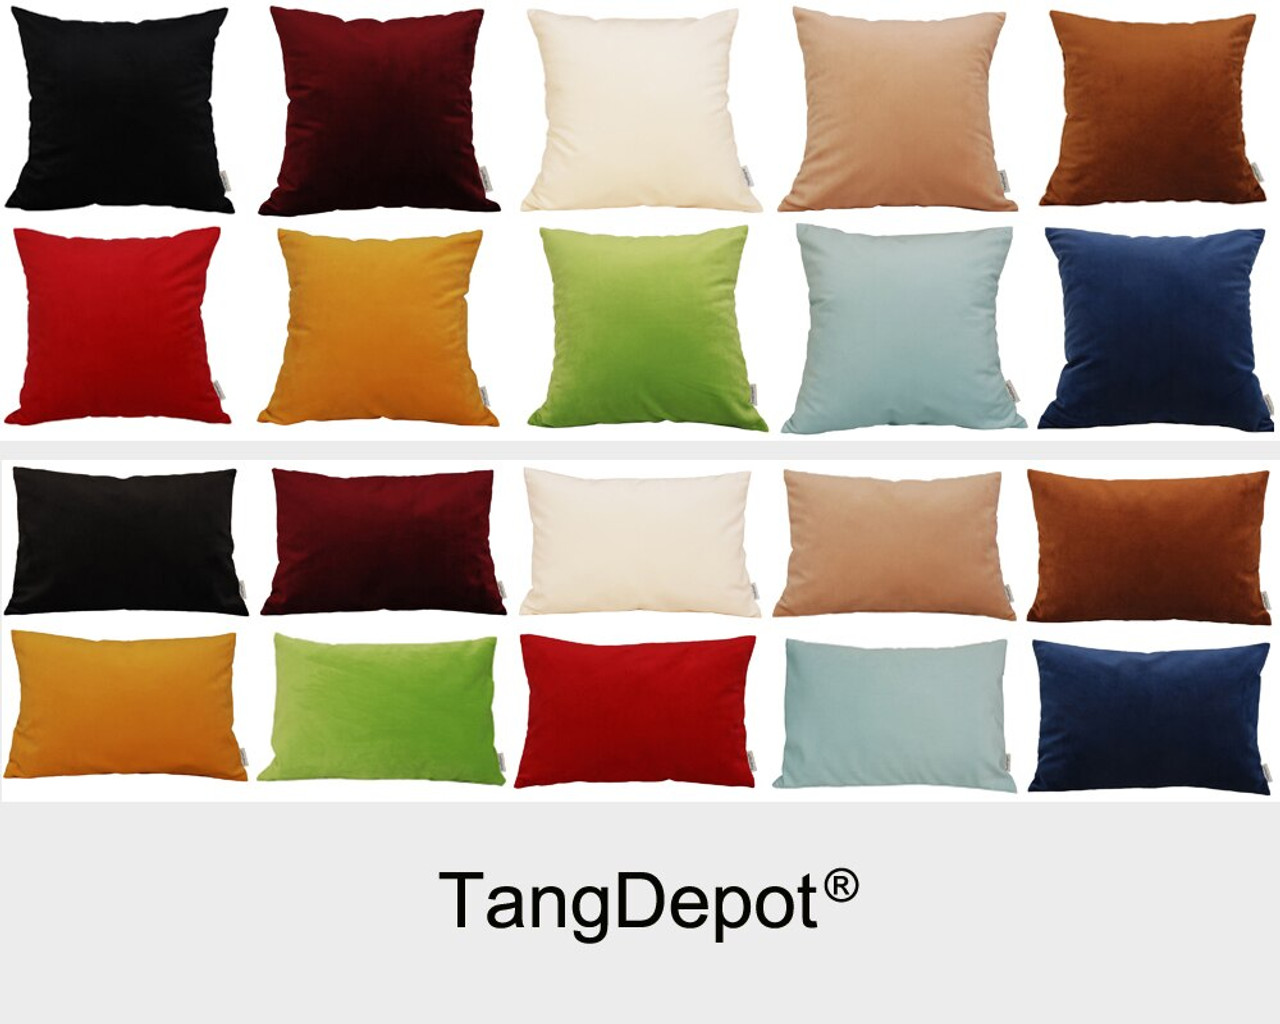 Tangdepot Solid Velvet Throw Pillow Cover Euro Sham Cushion Sham Super Luxury Soft Pillow Cases Many Color Size Options Tangdepot